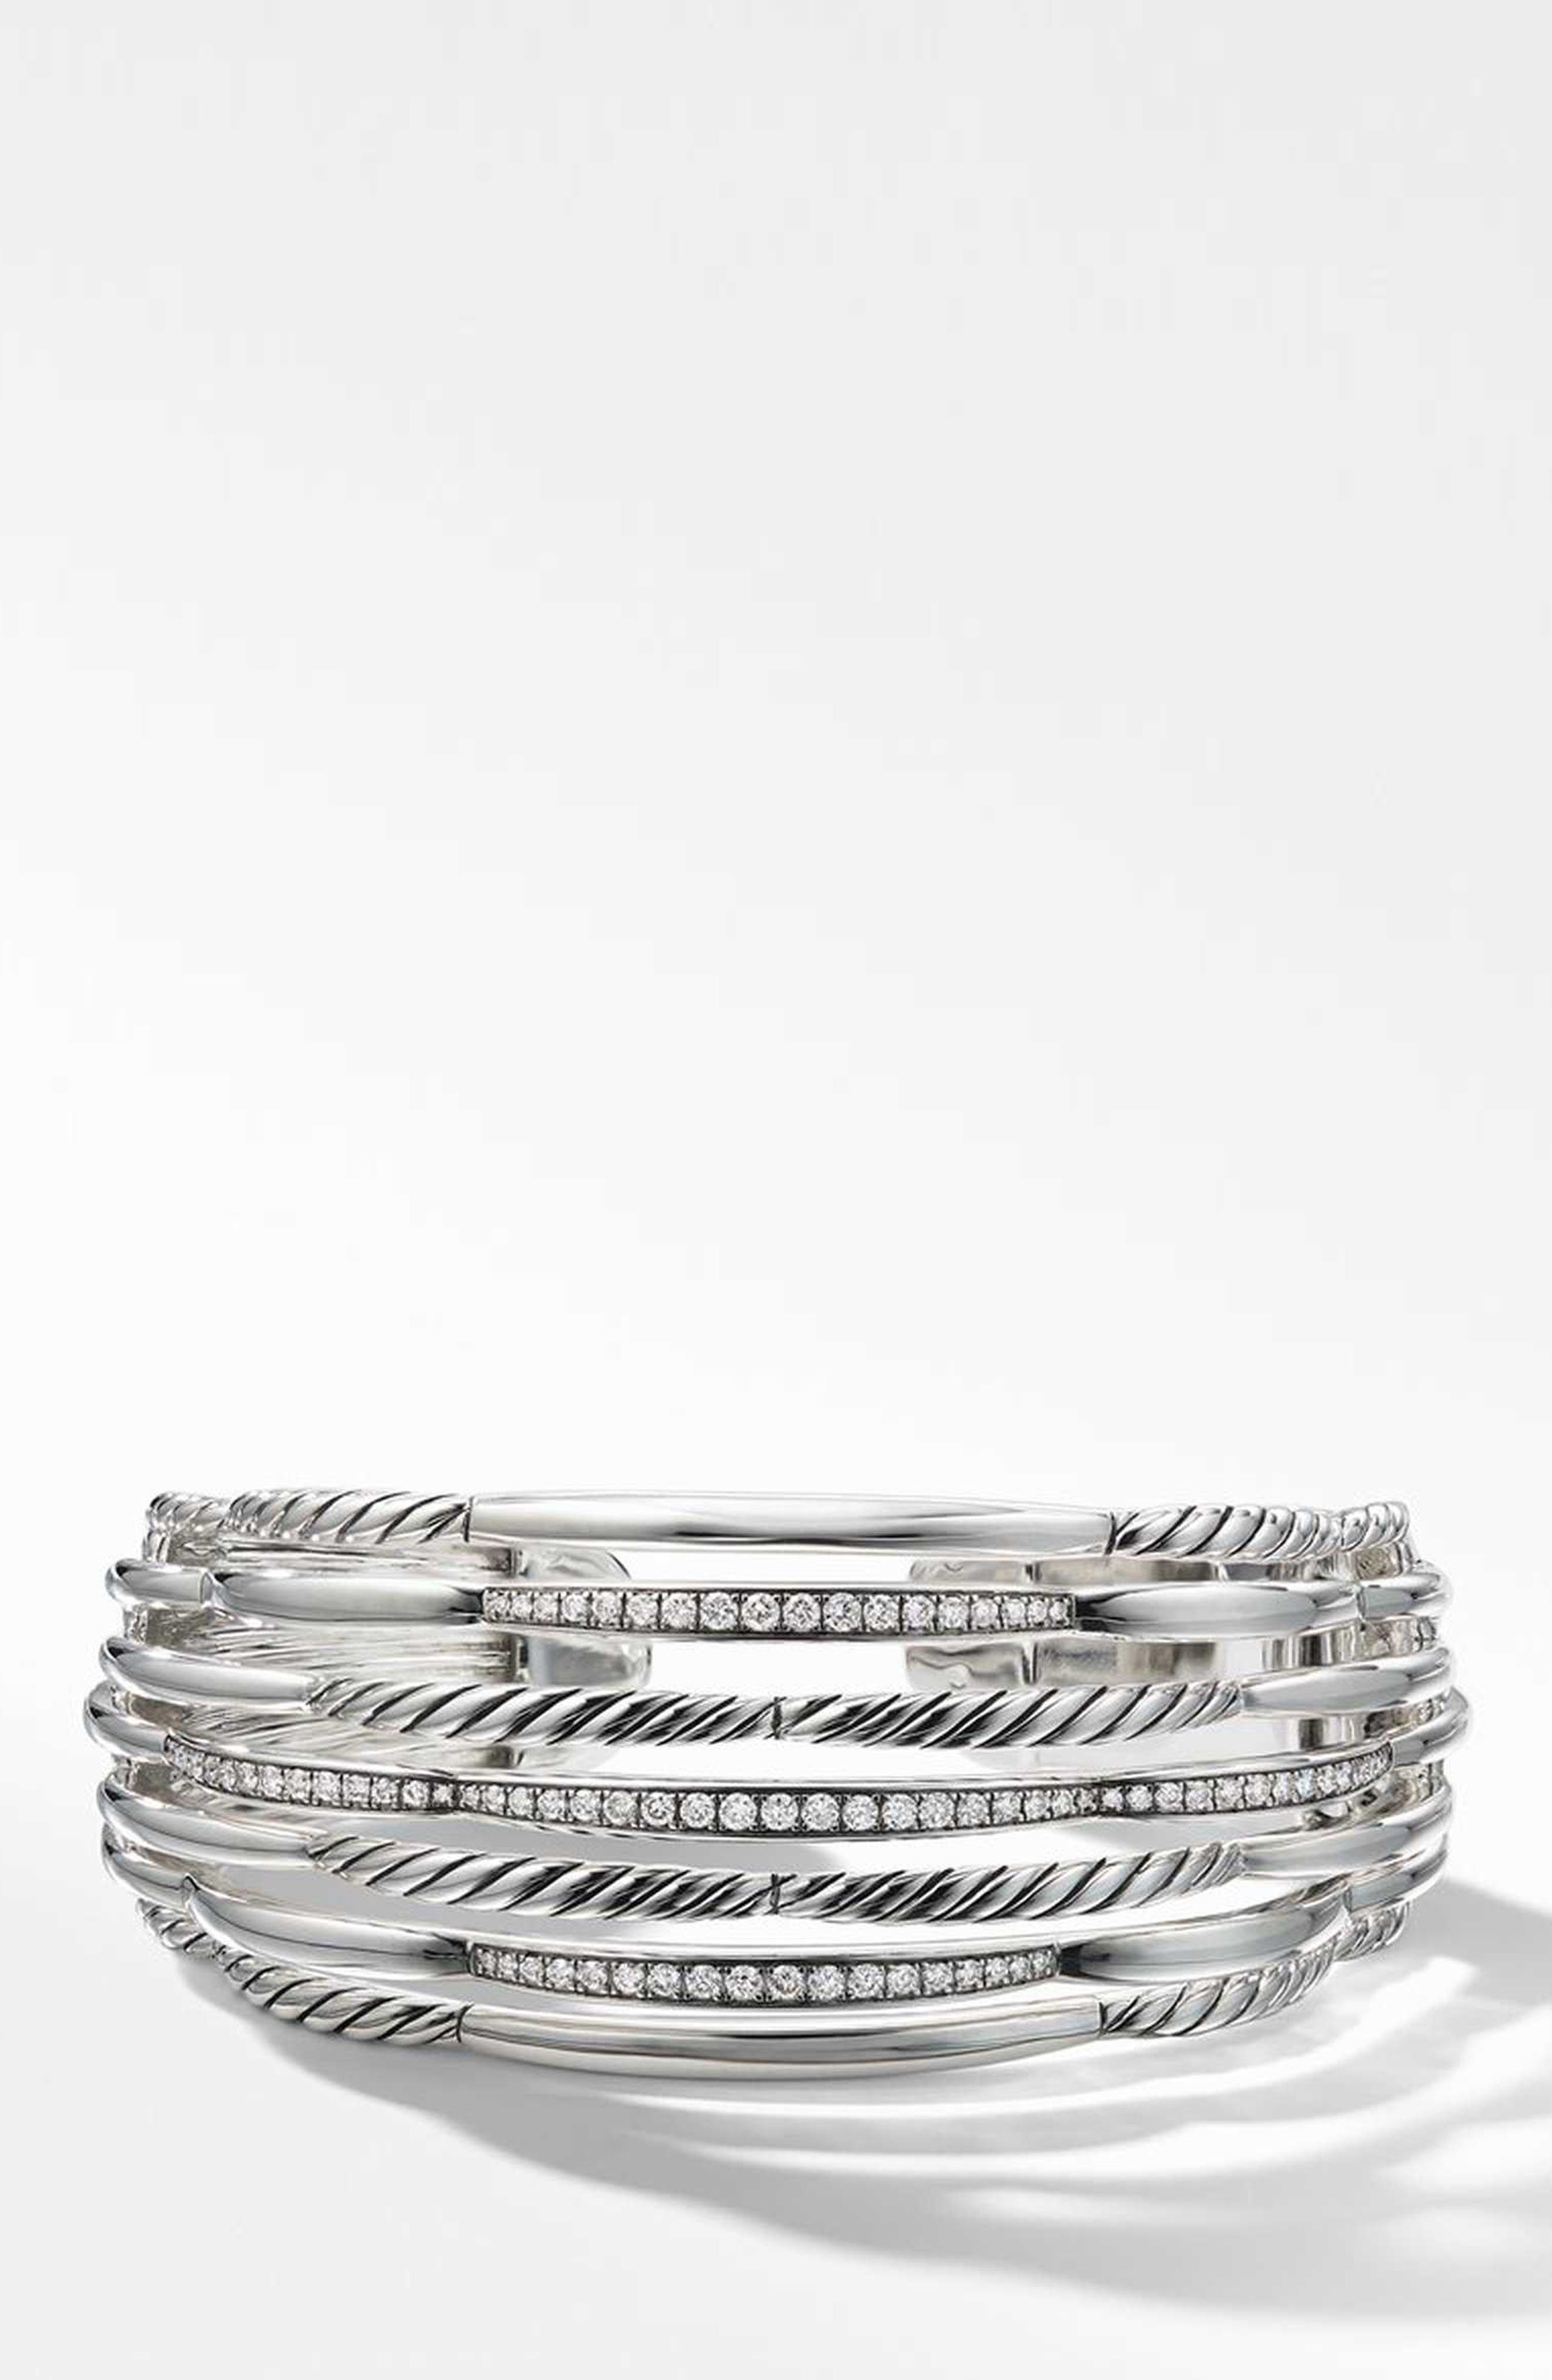 Wide Woven Cuff Bracelet with Diamonds,                             Main thumbnail 1, color,                             STERLING SILVER/ DIAMOND